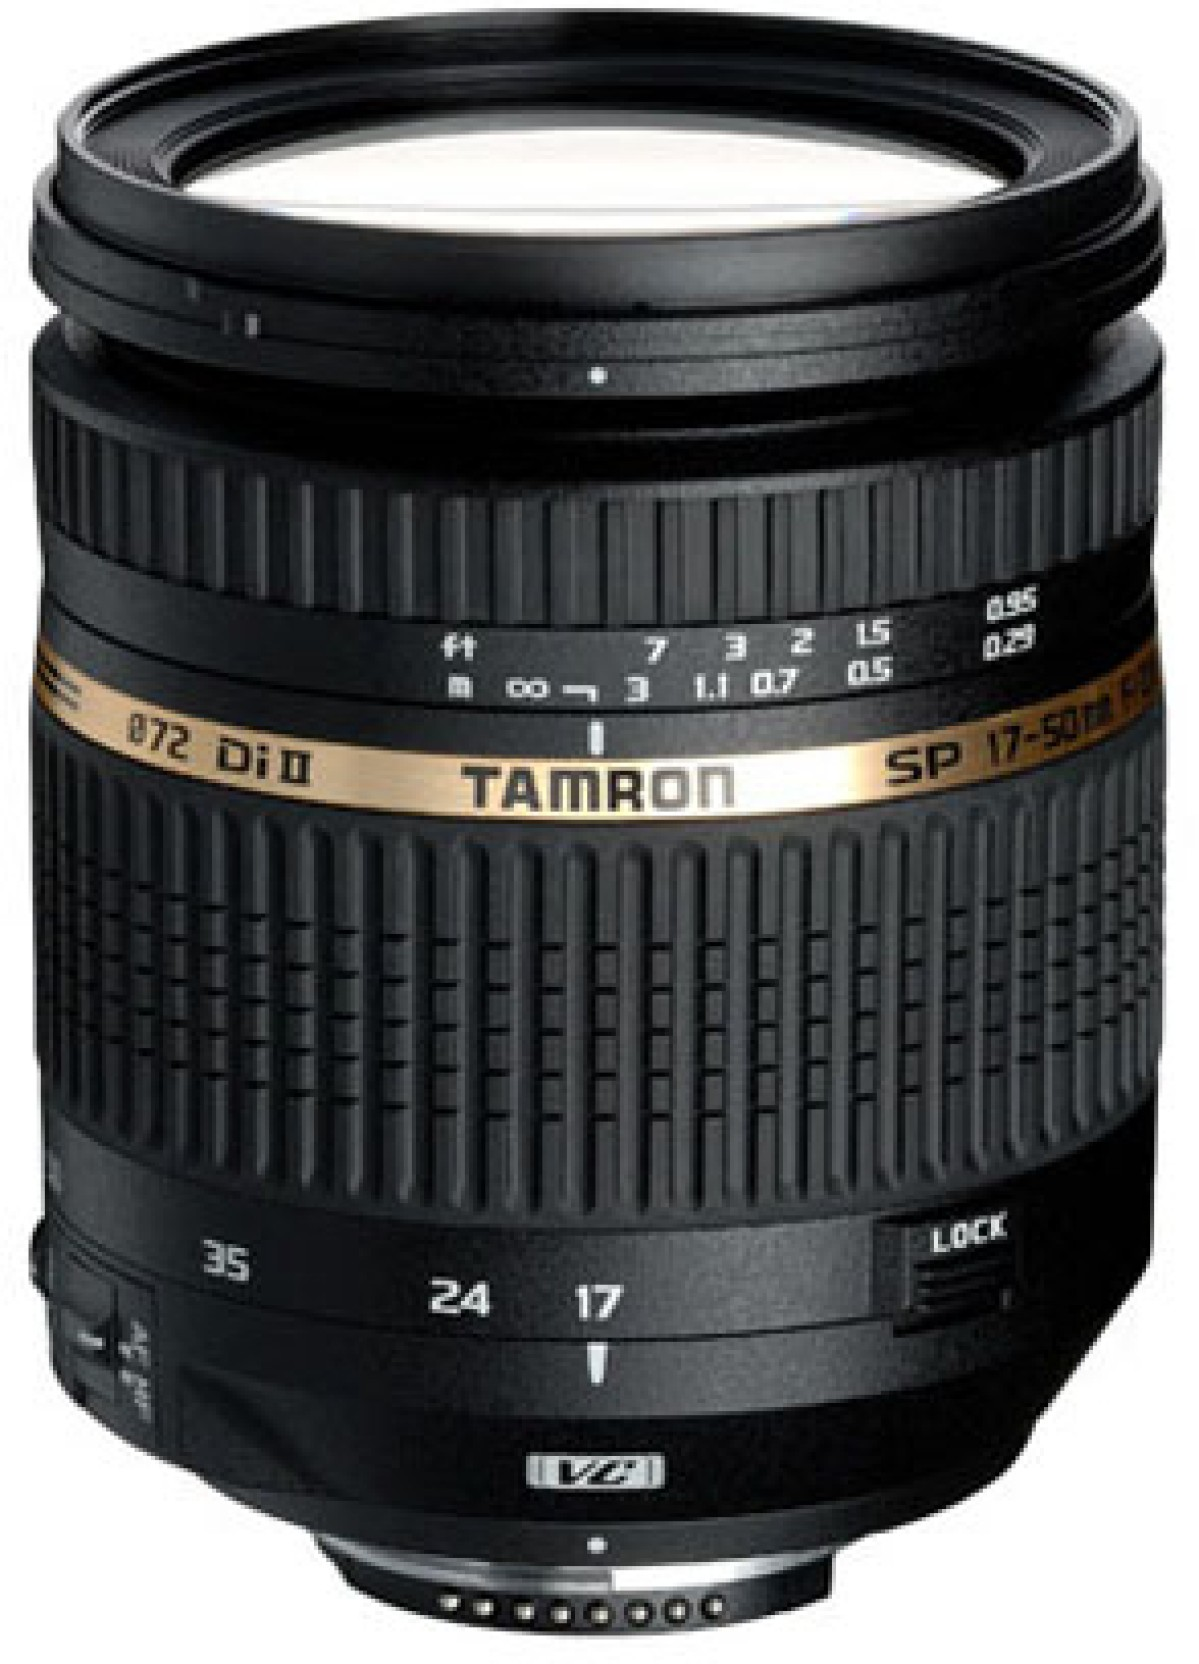 Tamron Sp Af17 50mm F 28 Xr Diii Vc Ld Aspherical If Lens For Canon Af 17 Di Ii Add To Cart